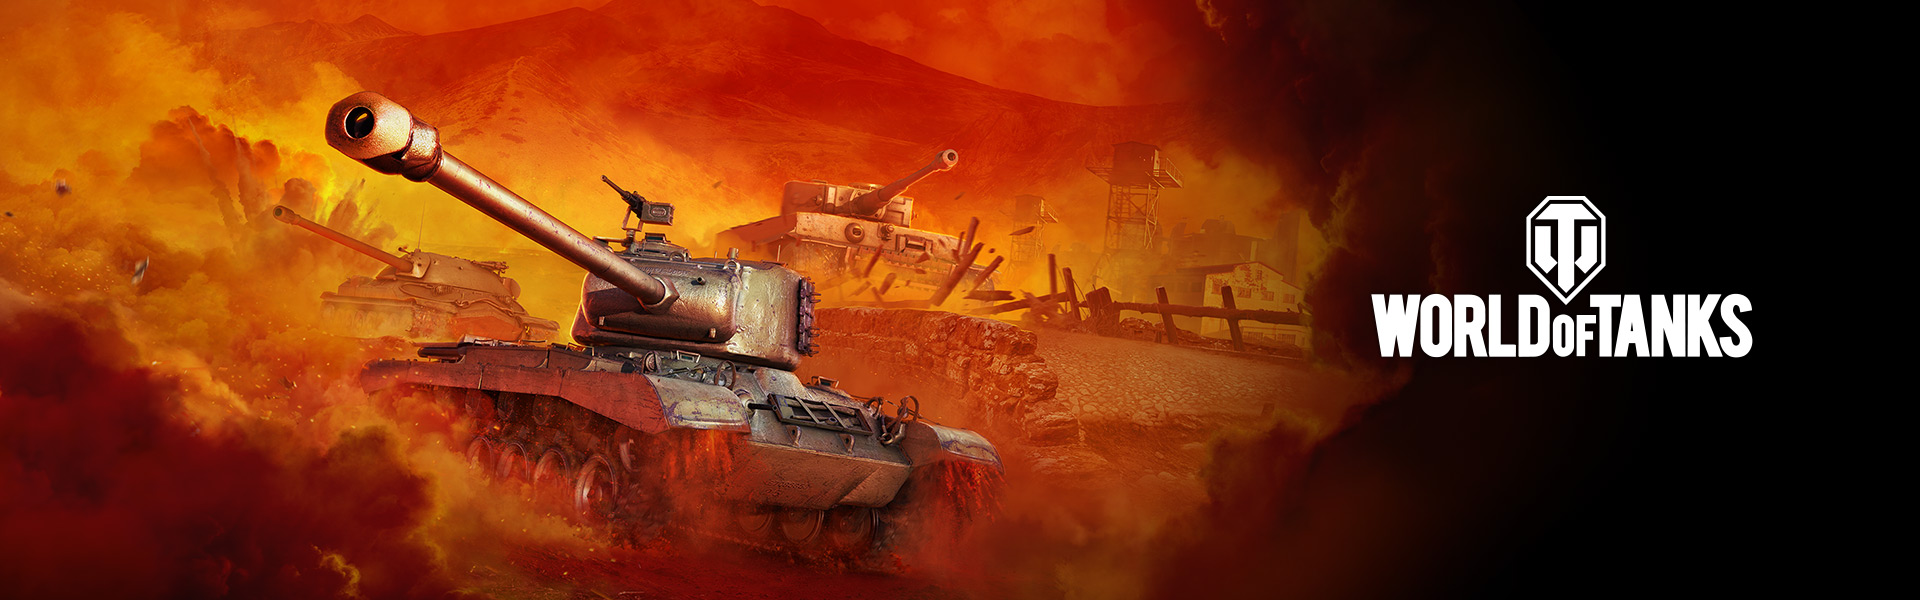 World of Tanks logo with various tanks rolling over terrain behind them